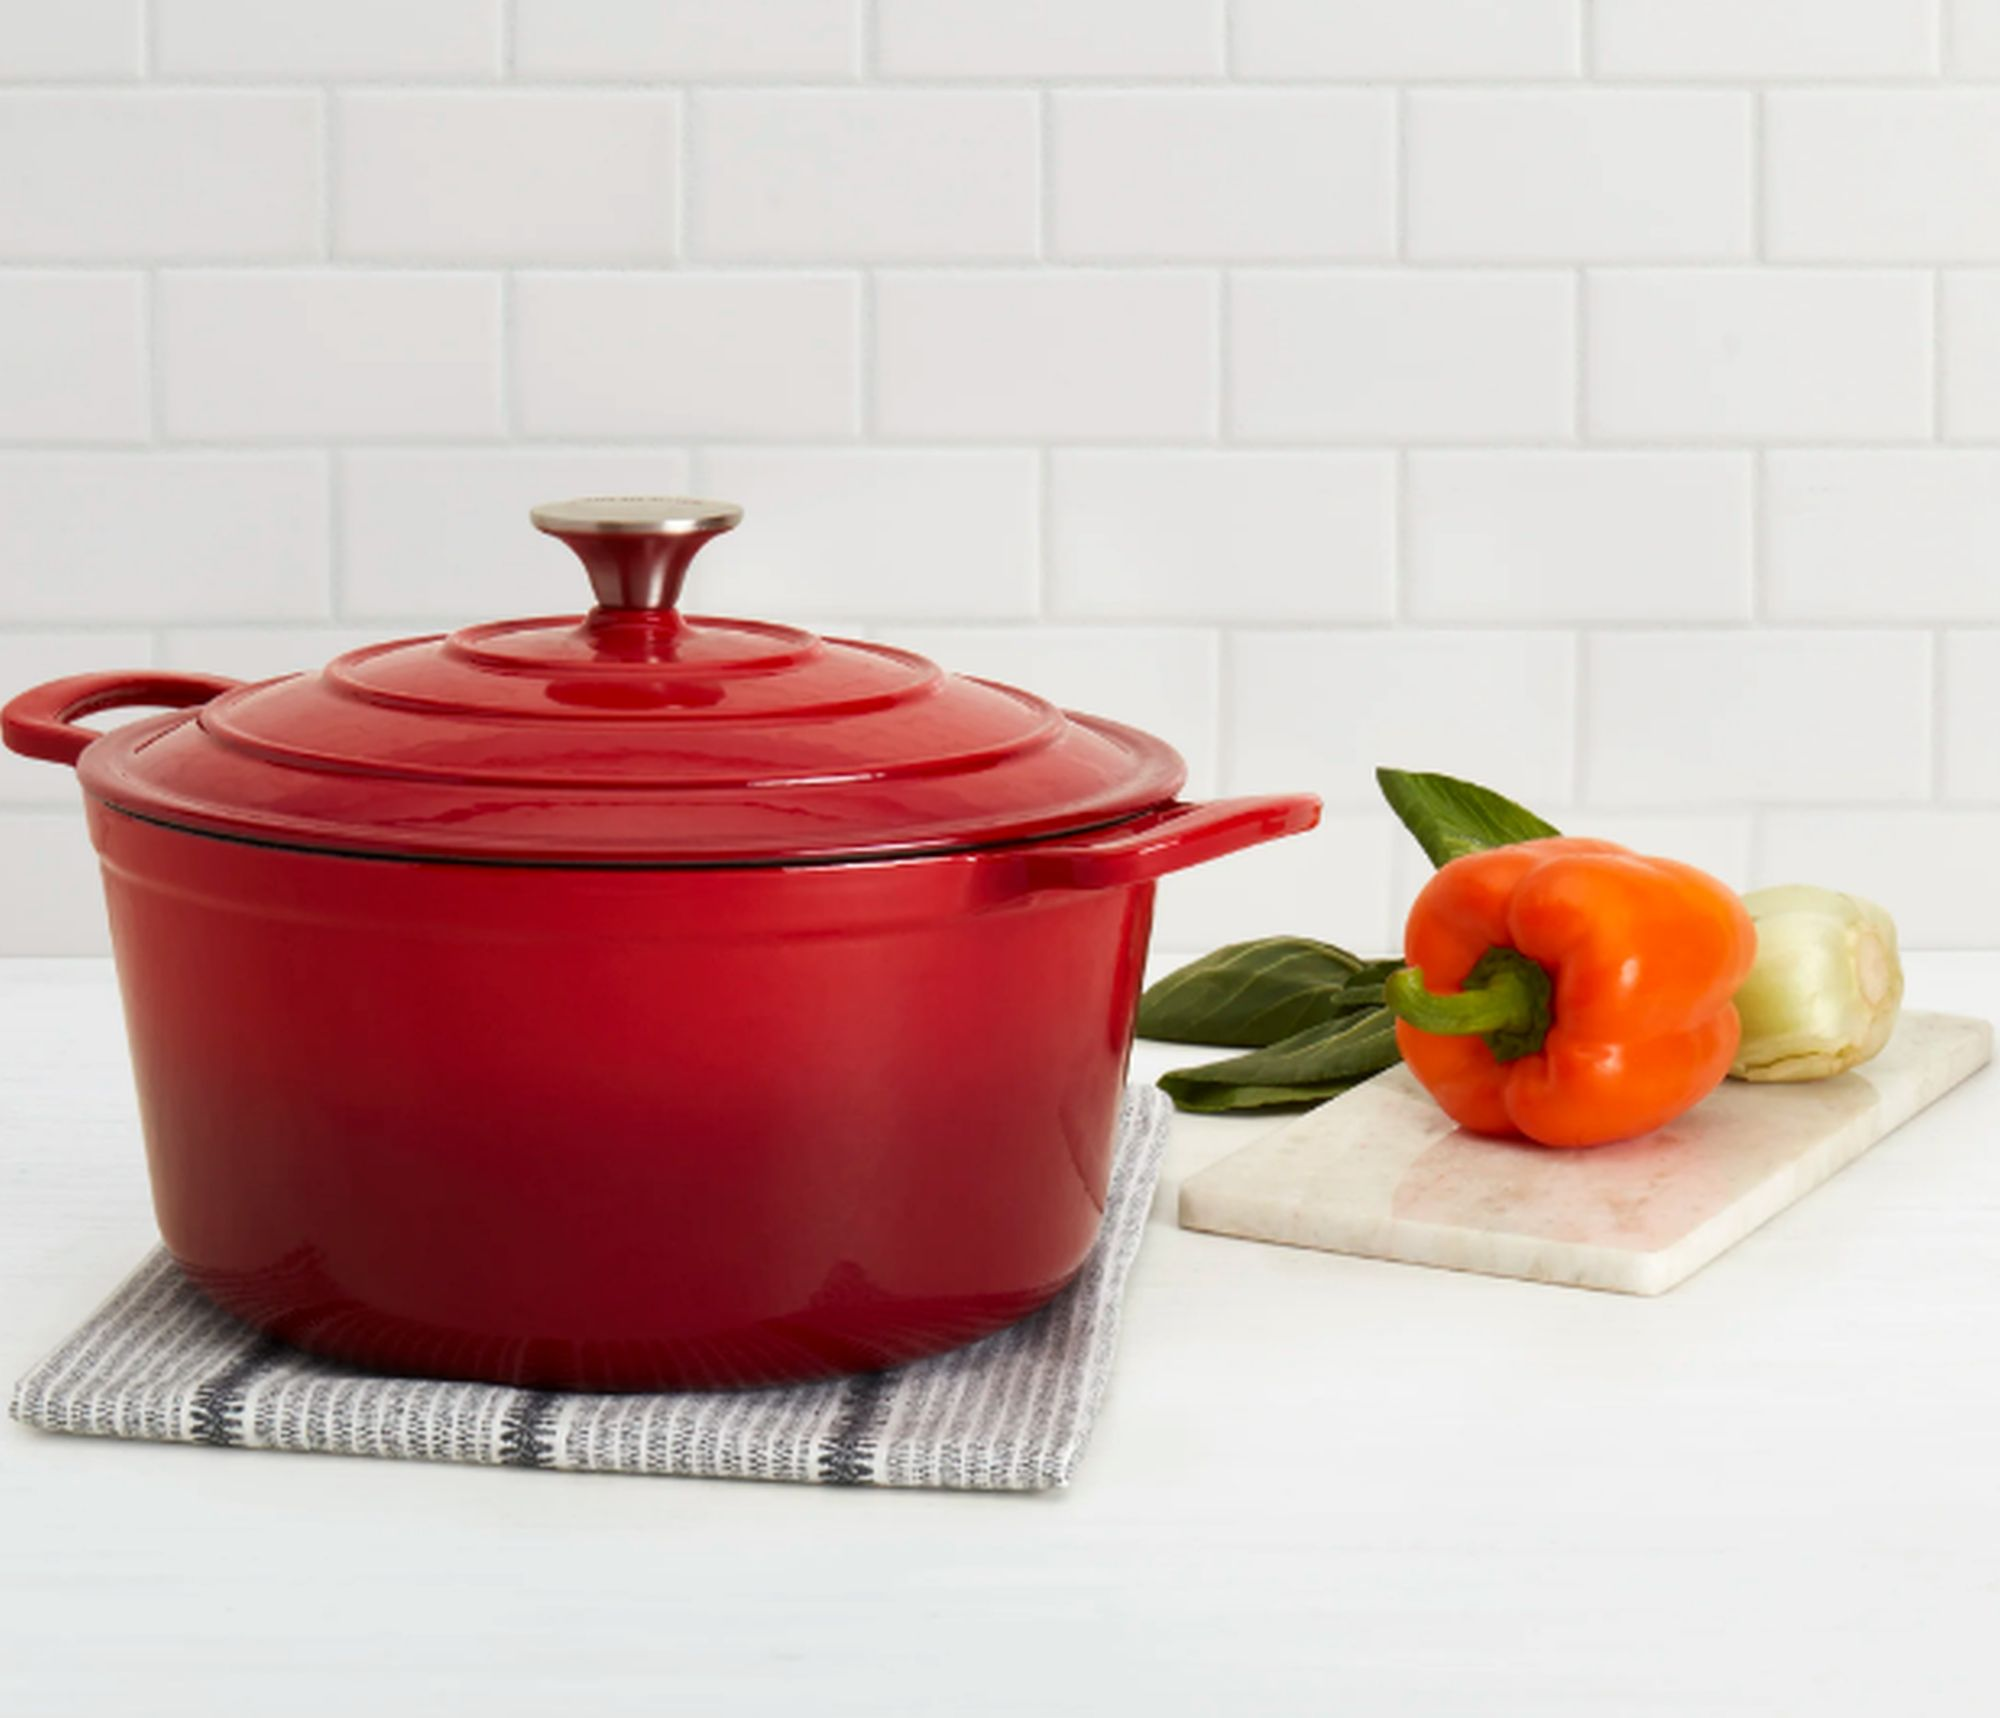 Substitute for Dutch Oven